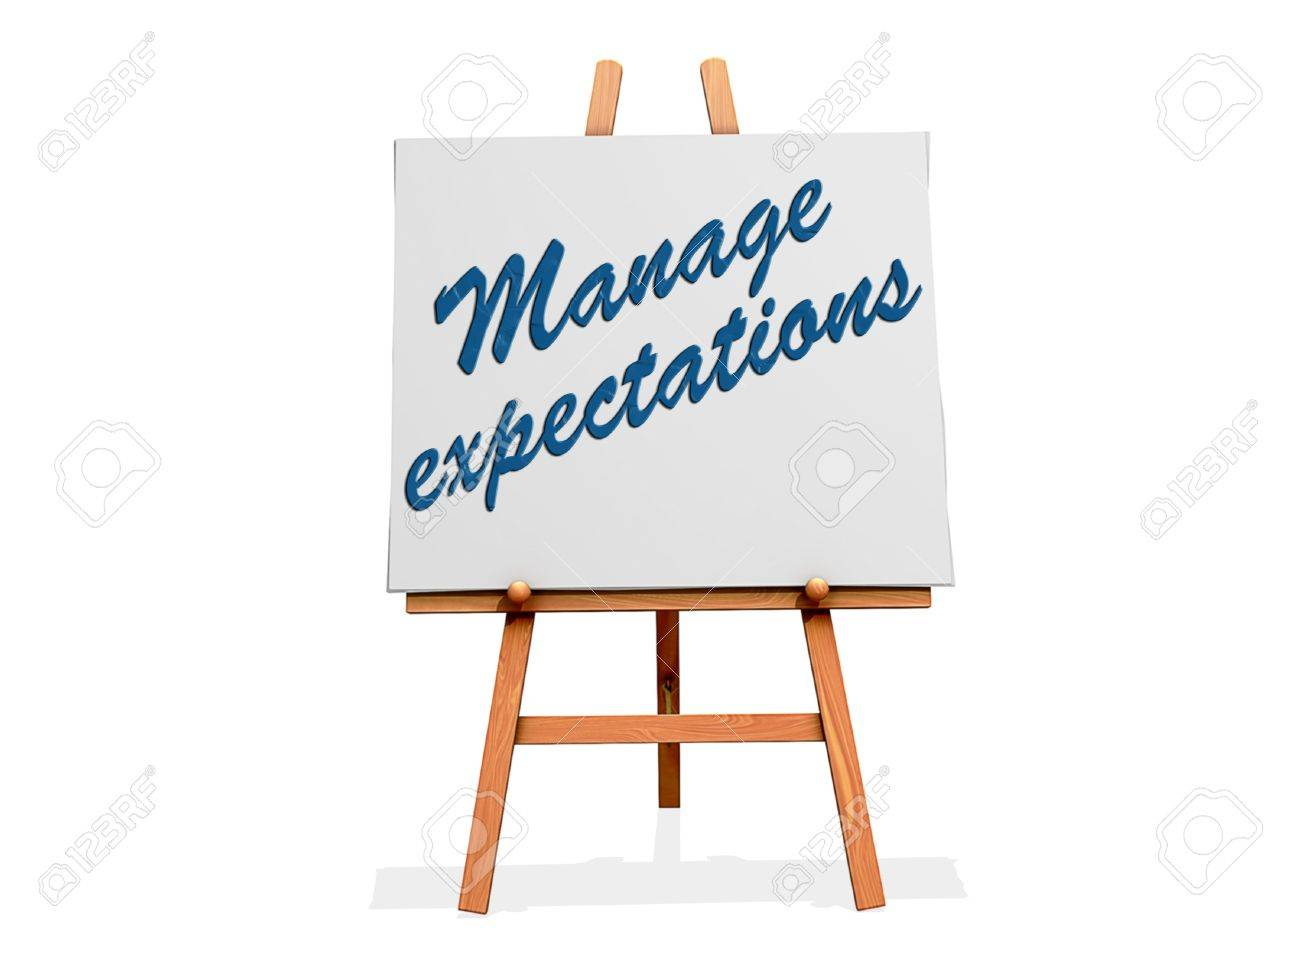 Manage Expectations on a sign. Stock Photo - 20705924